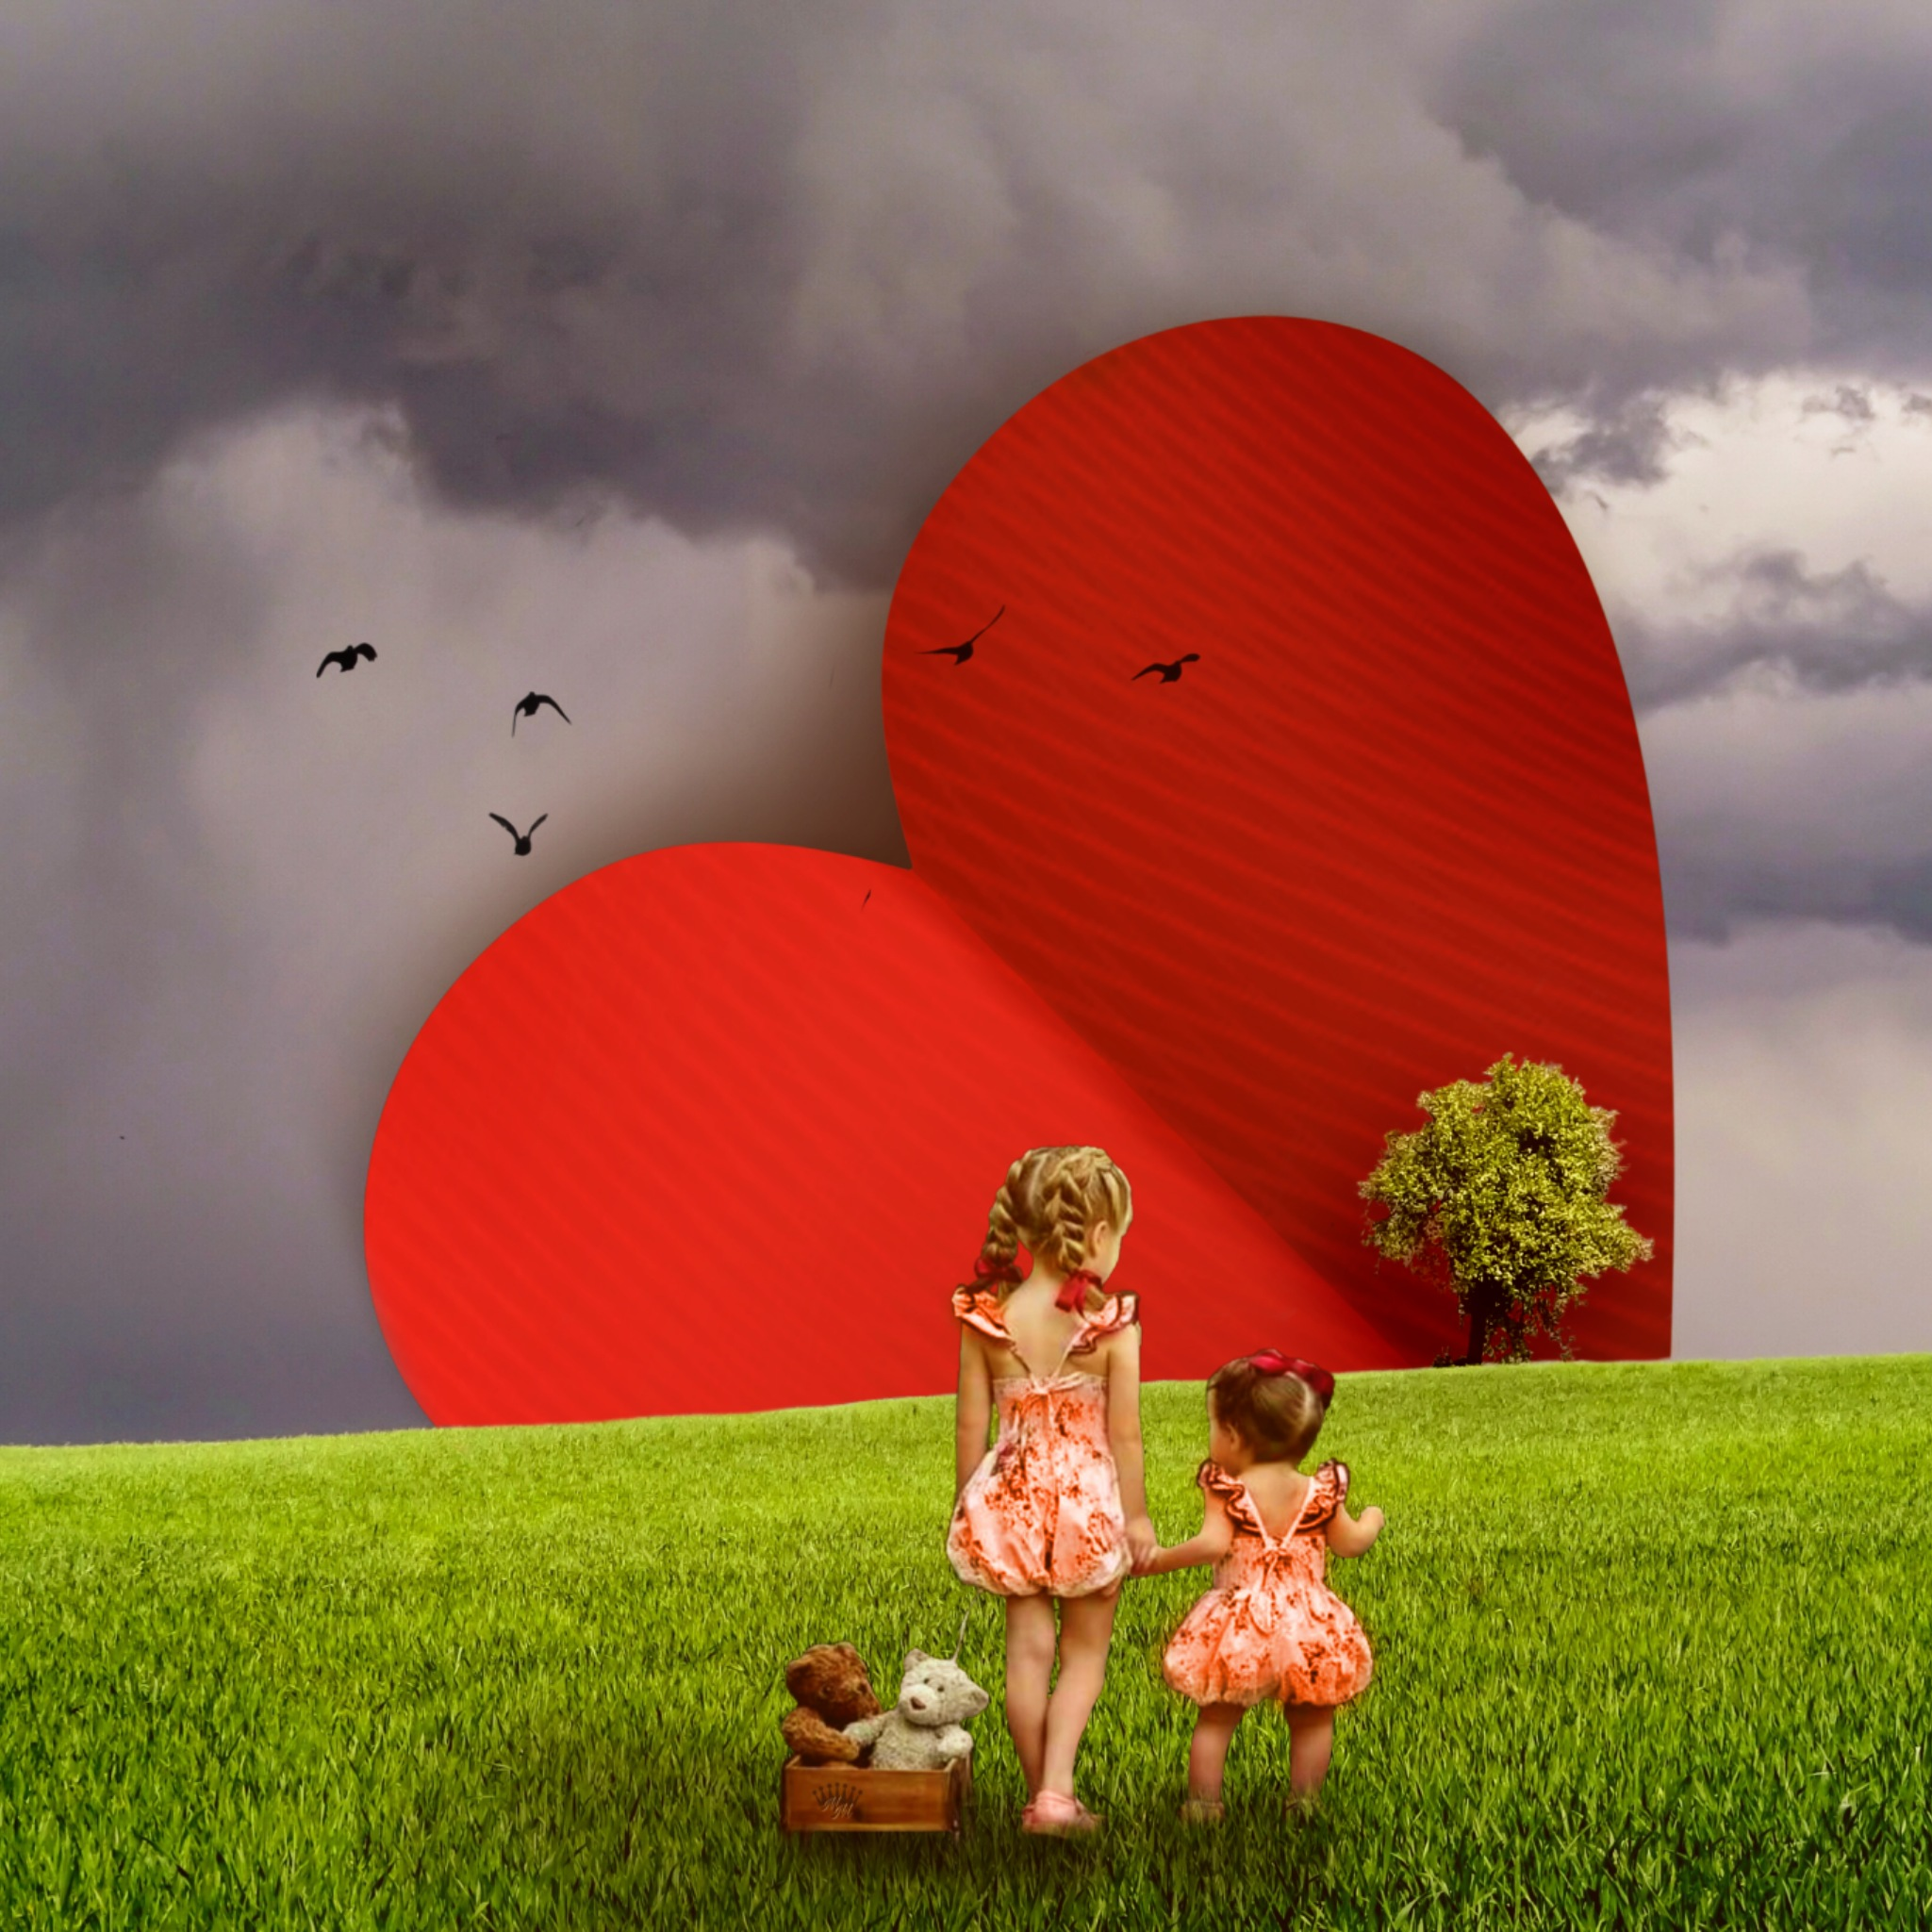 Original photography is from the #mastershoutout gallery of photographer @maciejgrzegorz125 #heart #love #surreal #heart #giantheart #children #babies #fre